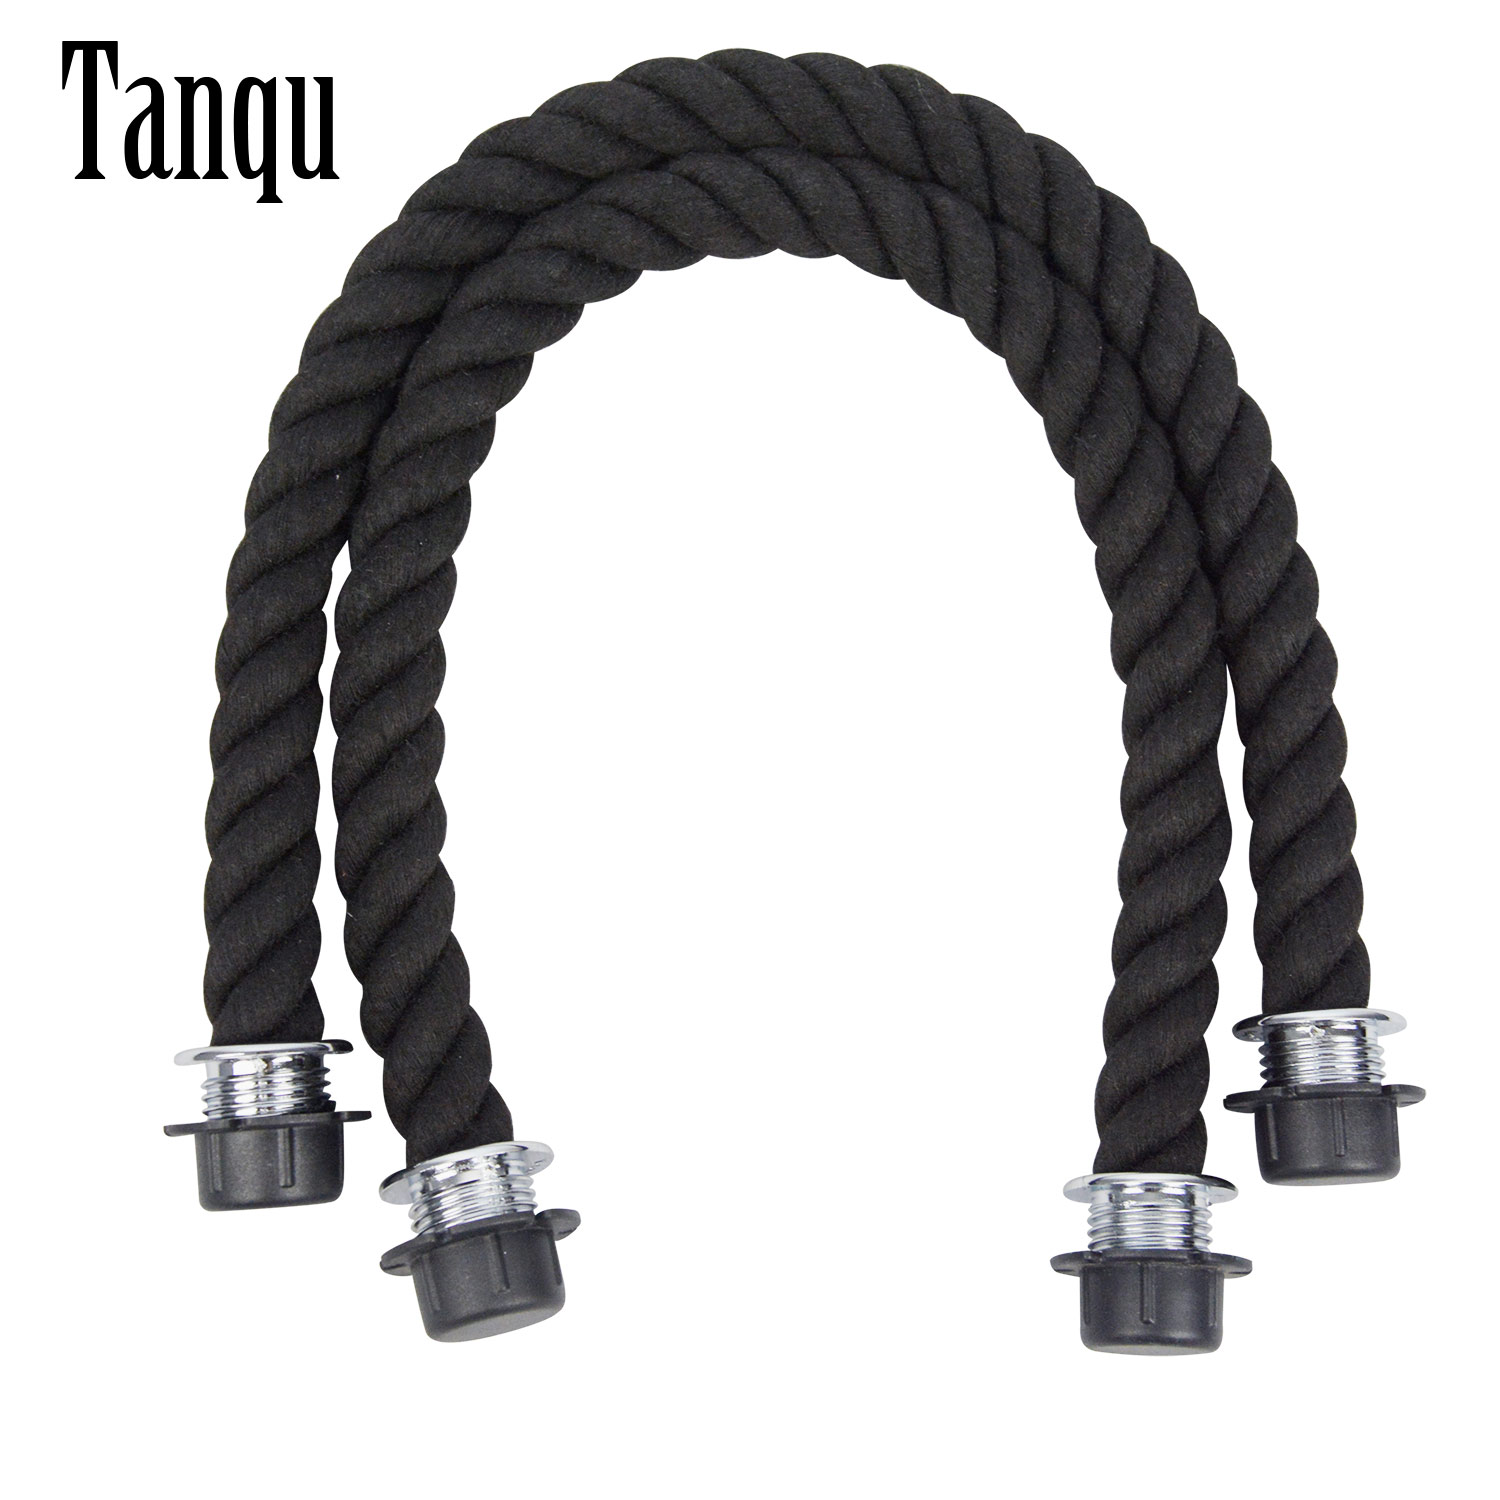 New Tanqu 1 Pair Long Short Black Natural Hemp Rope Handle For O Bag Obag Women Handbag Classic Mini EVA Bag